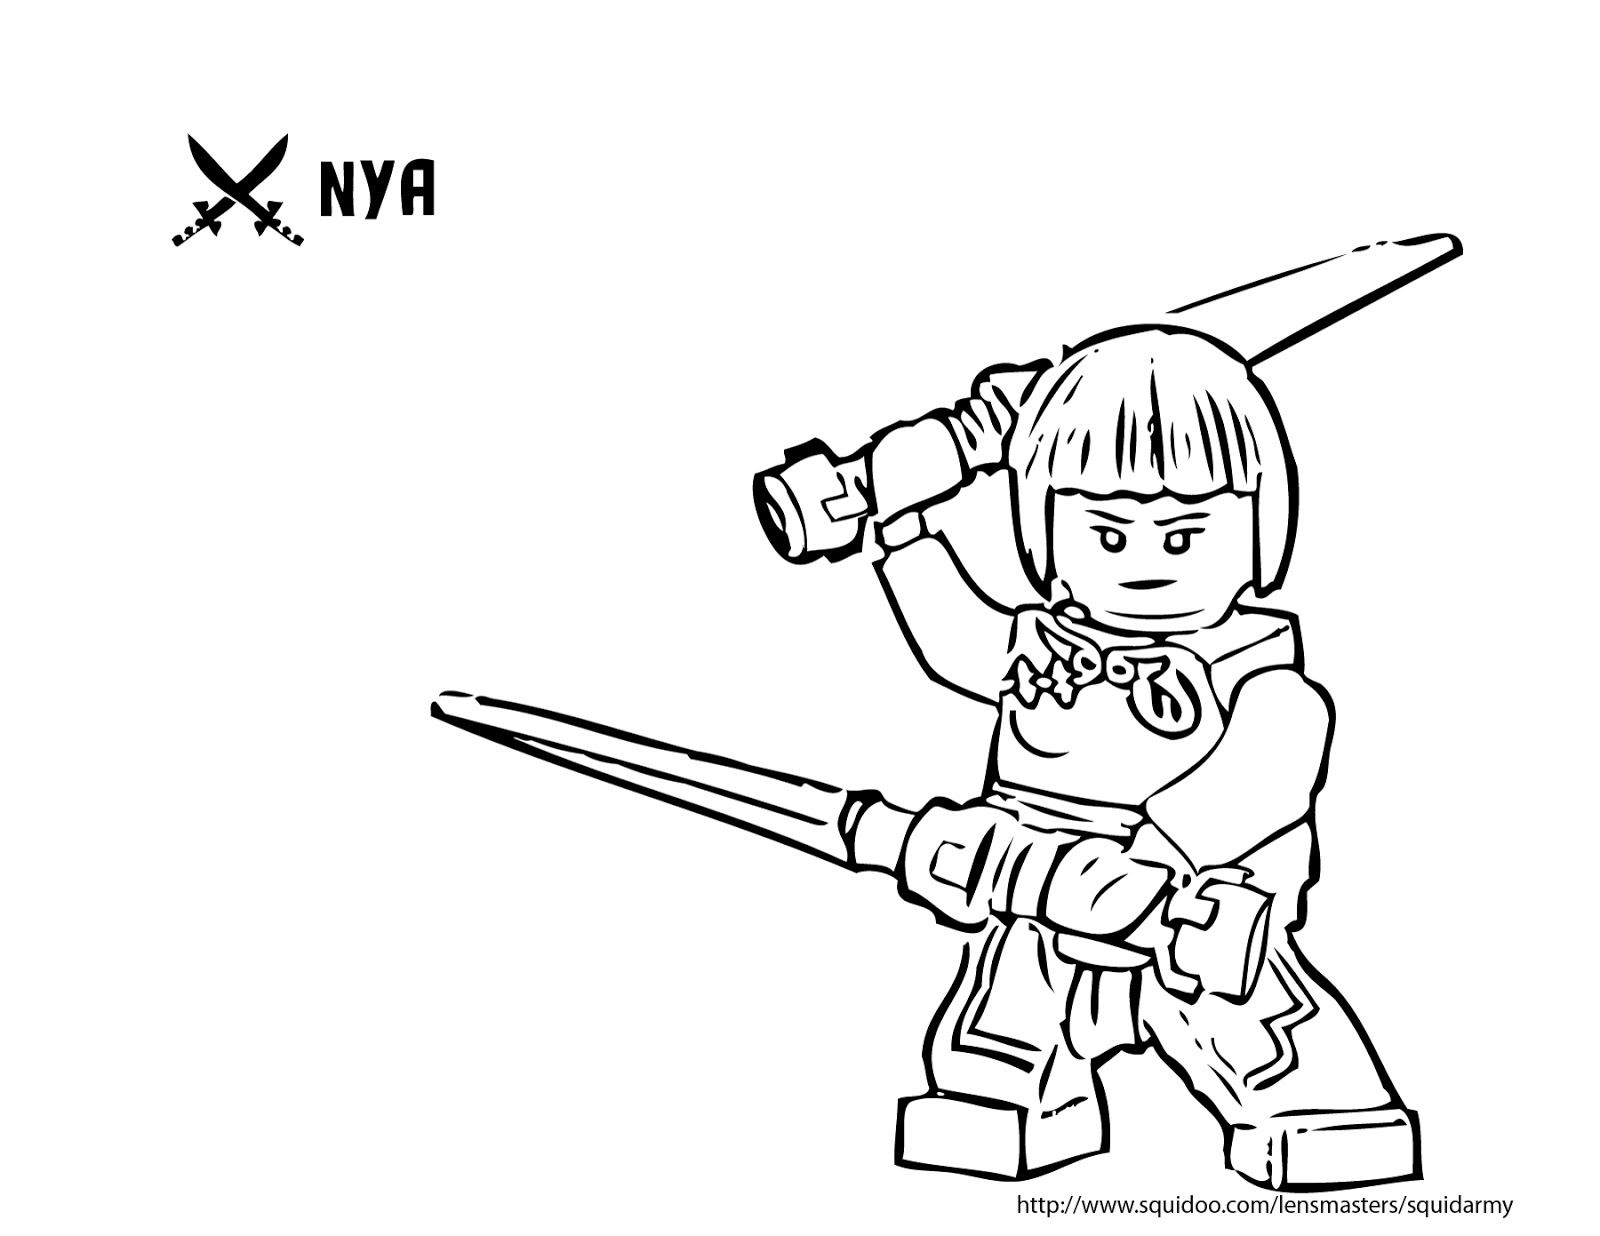 Coloring Ninjago Nya Pages 2020 Ninjago Coloring Pages